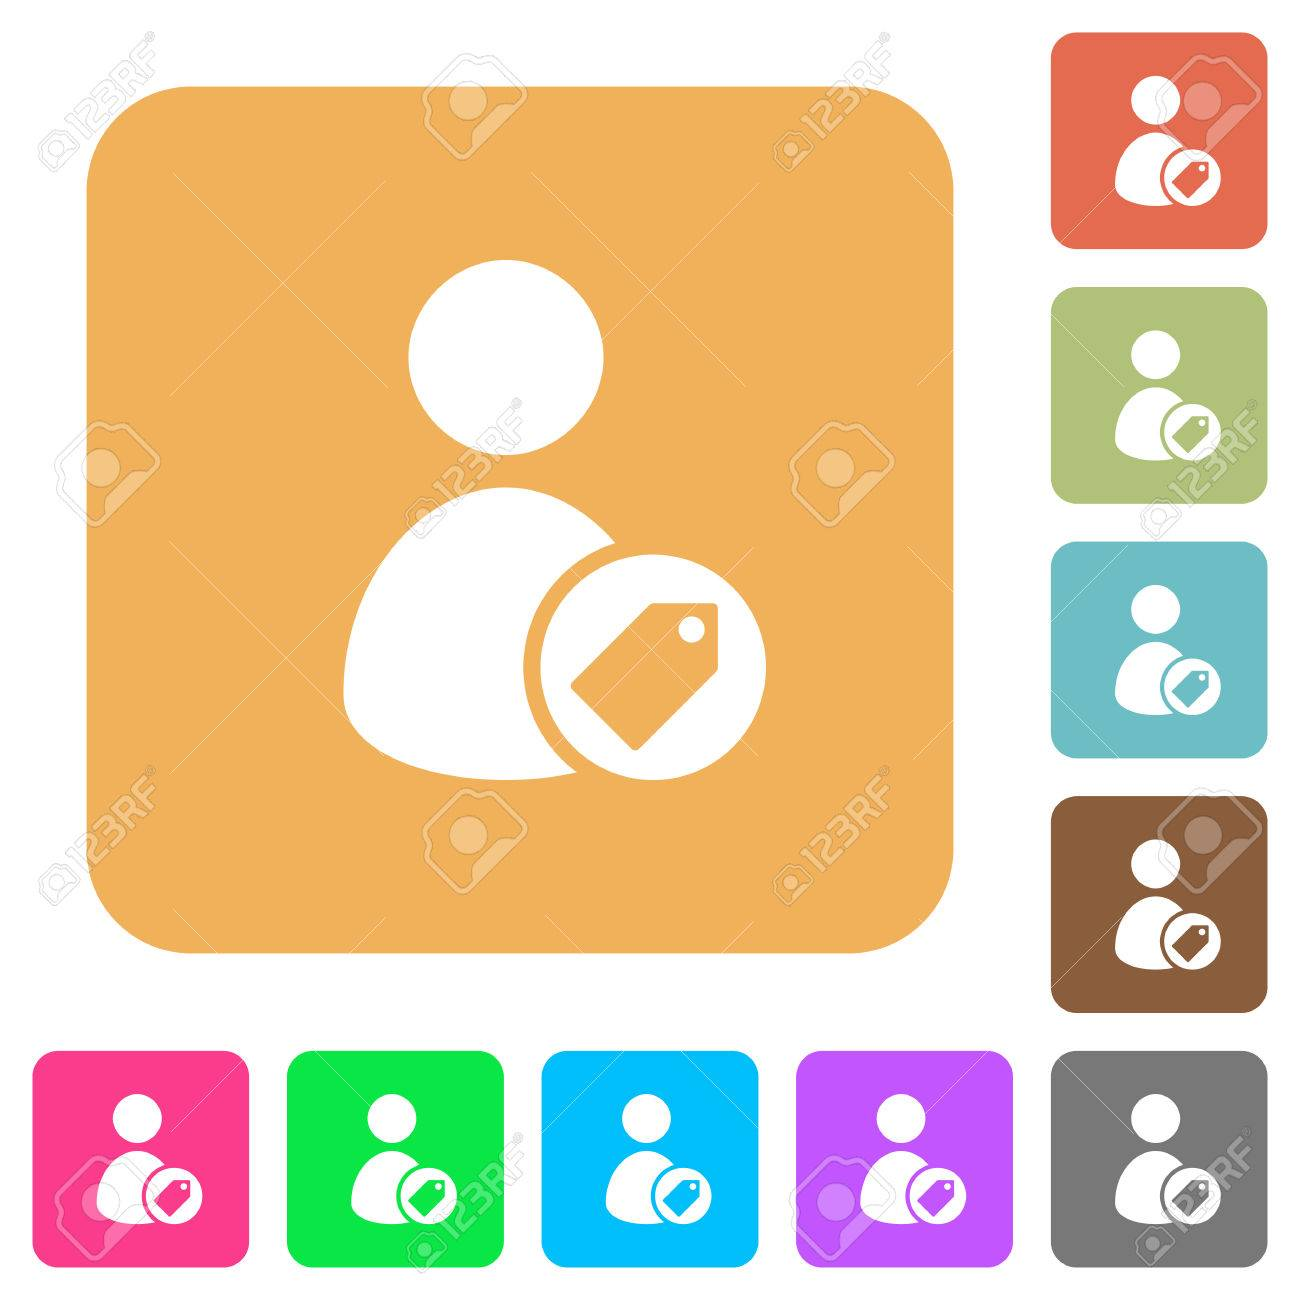 Tagging User Flat Icons On Rounded Square Vivid Color Backgrounds 1300x1300